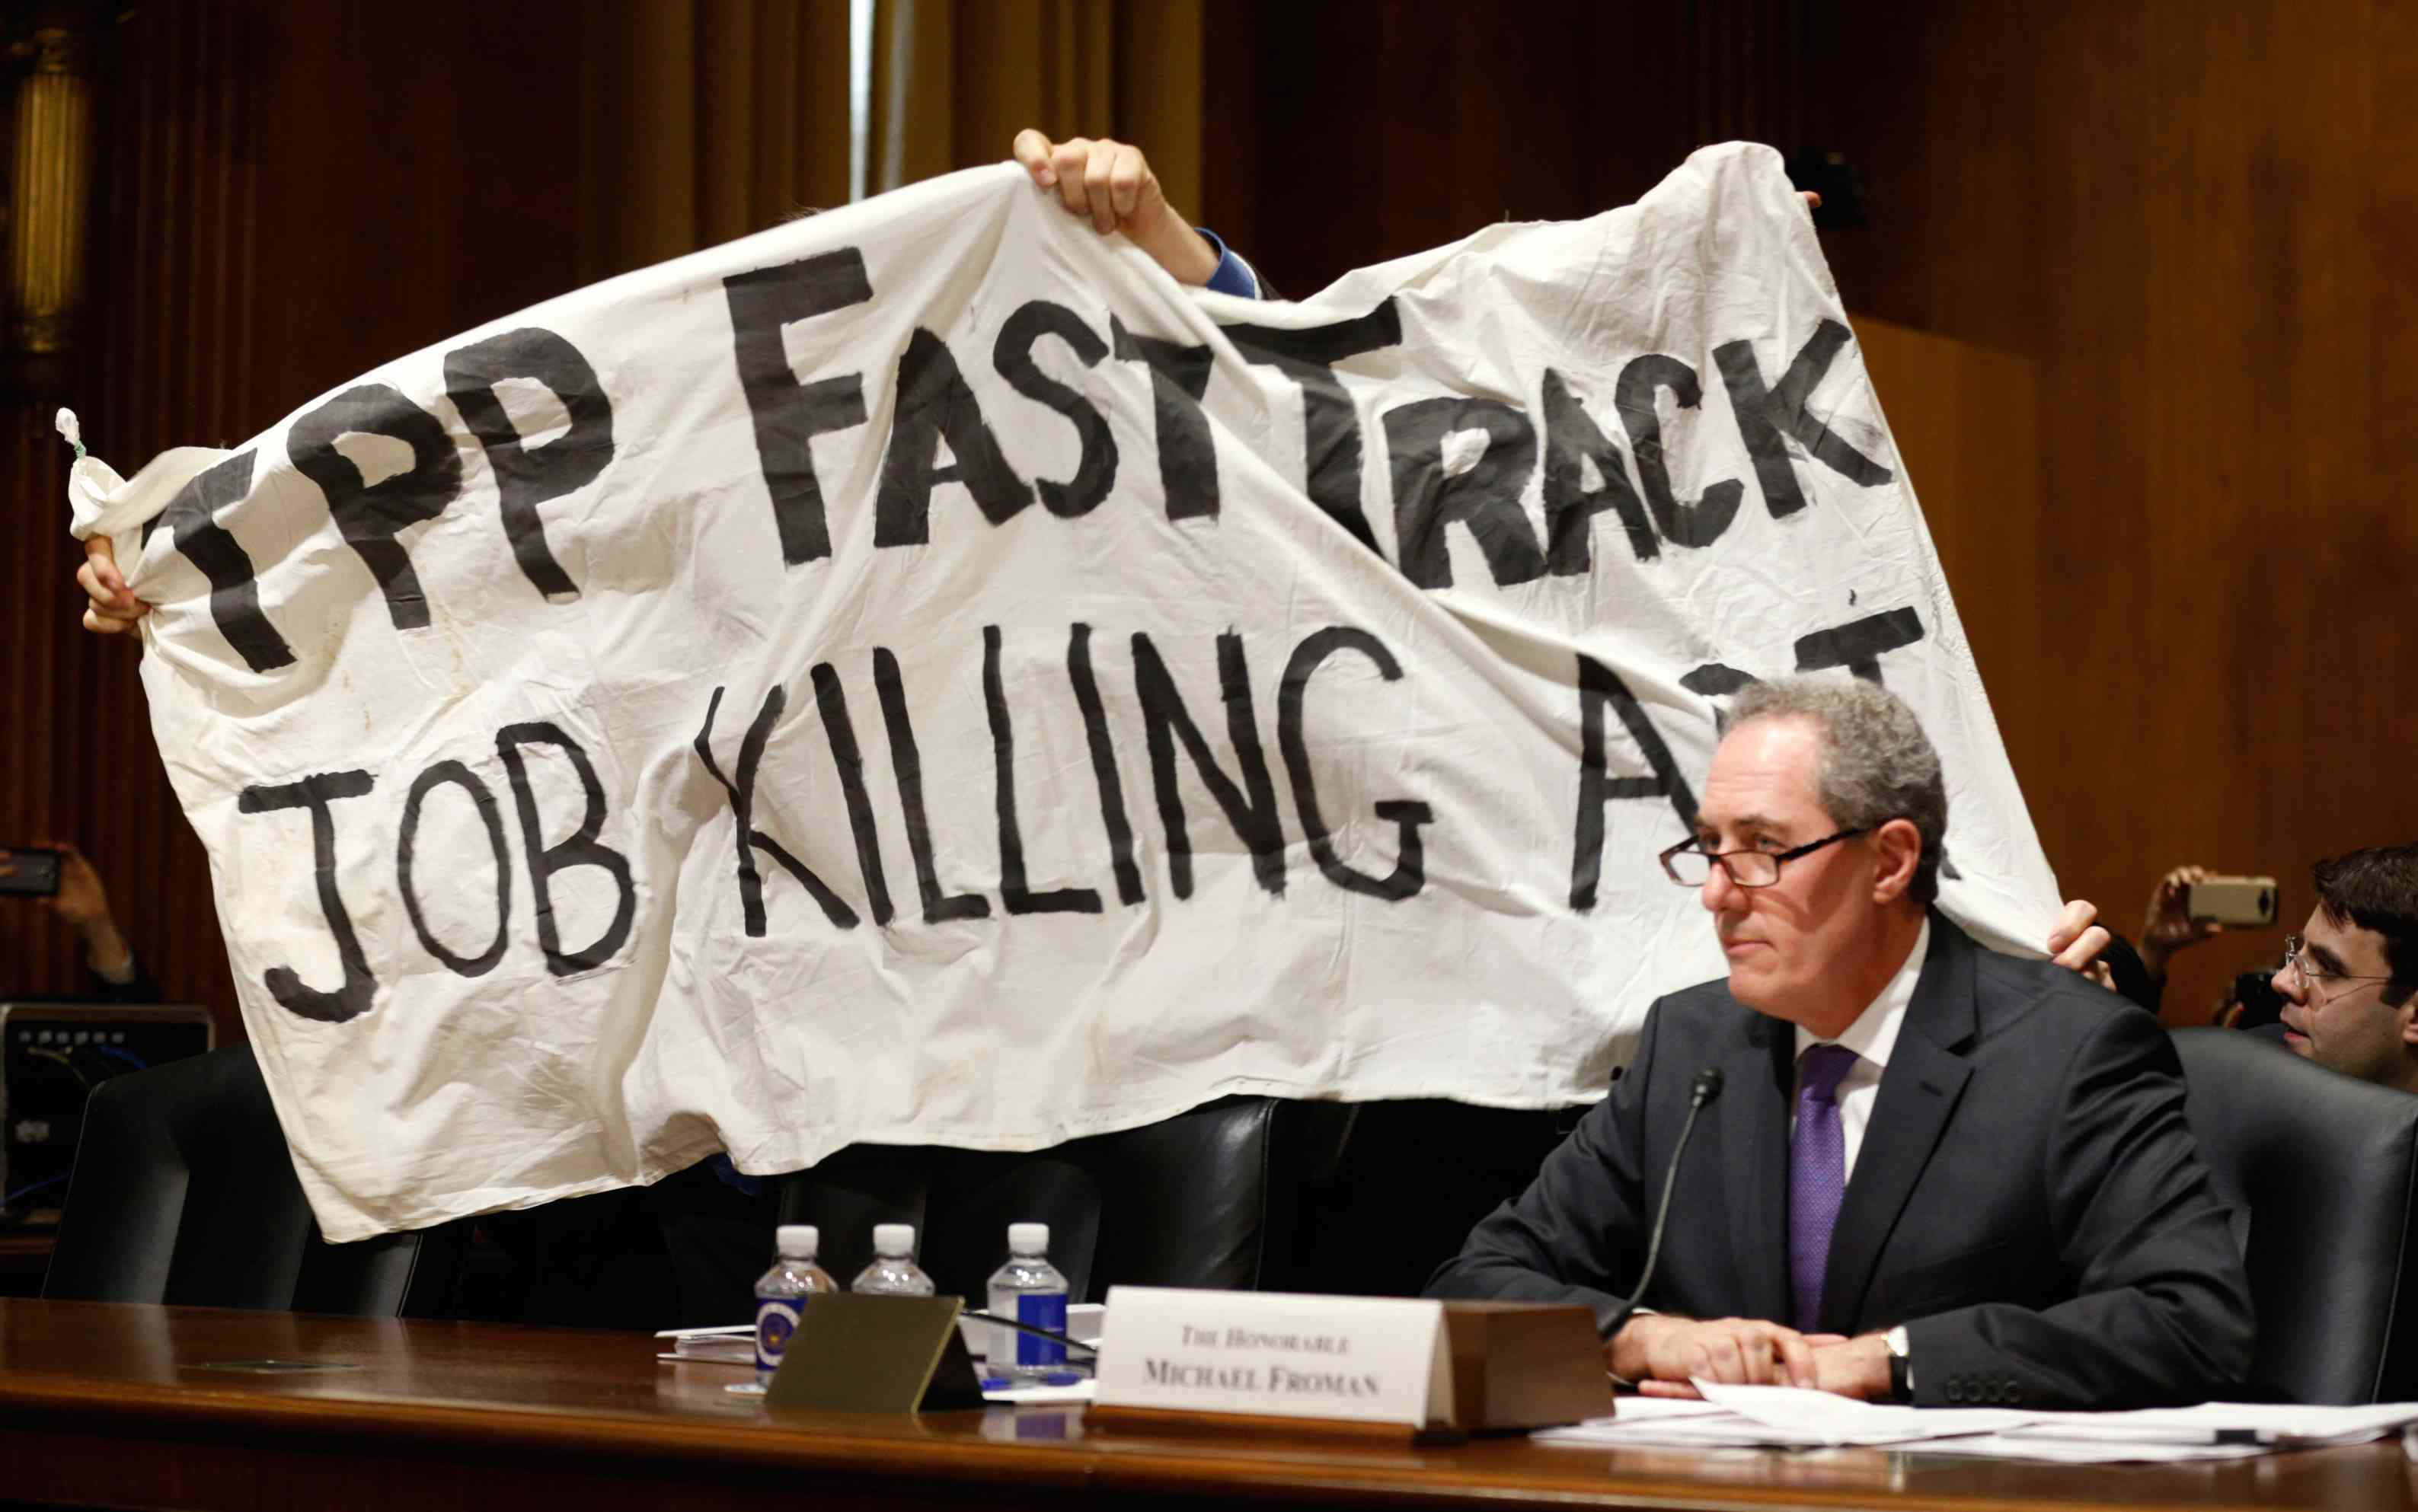 Your chance to officially tell the USTR what you think about the TPP